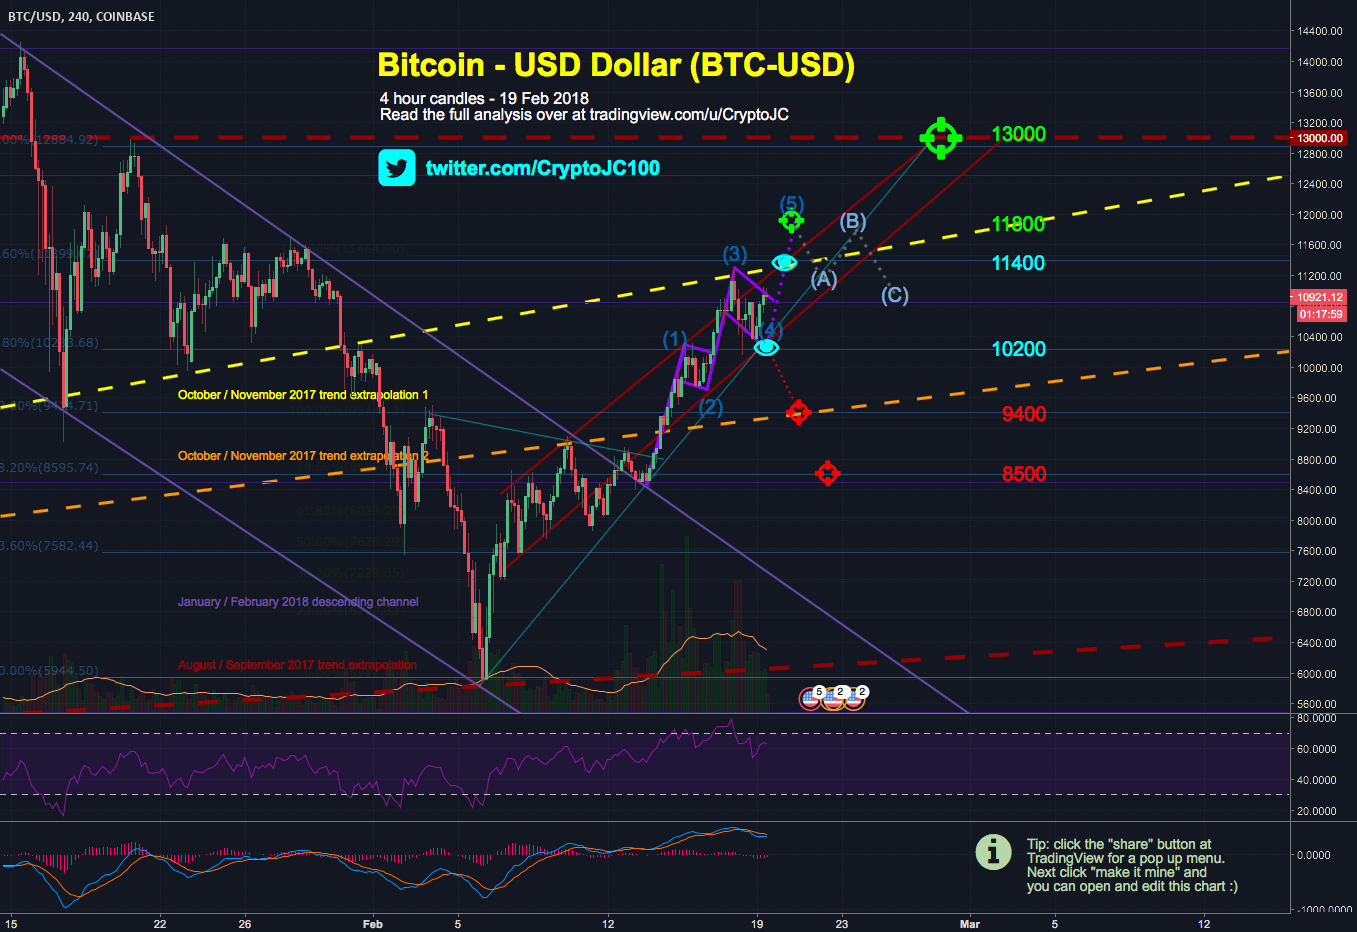 Bitcoin to test Oct/Nov trend again, can it march on to 13k?